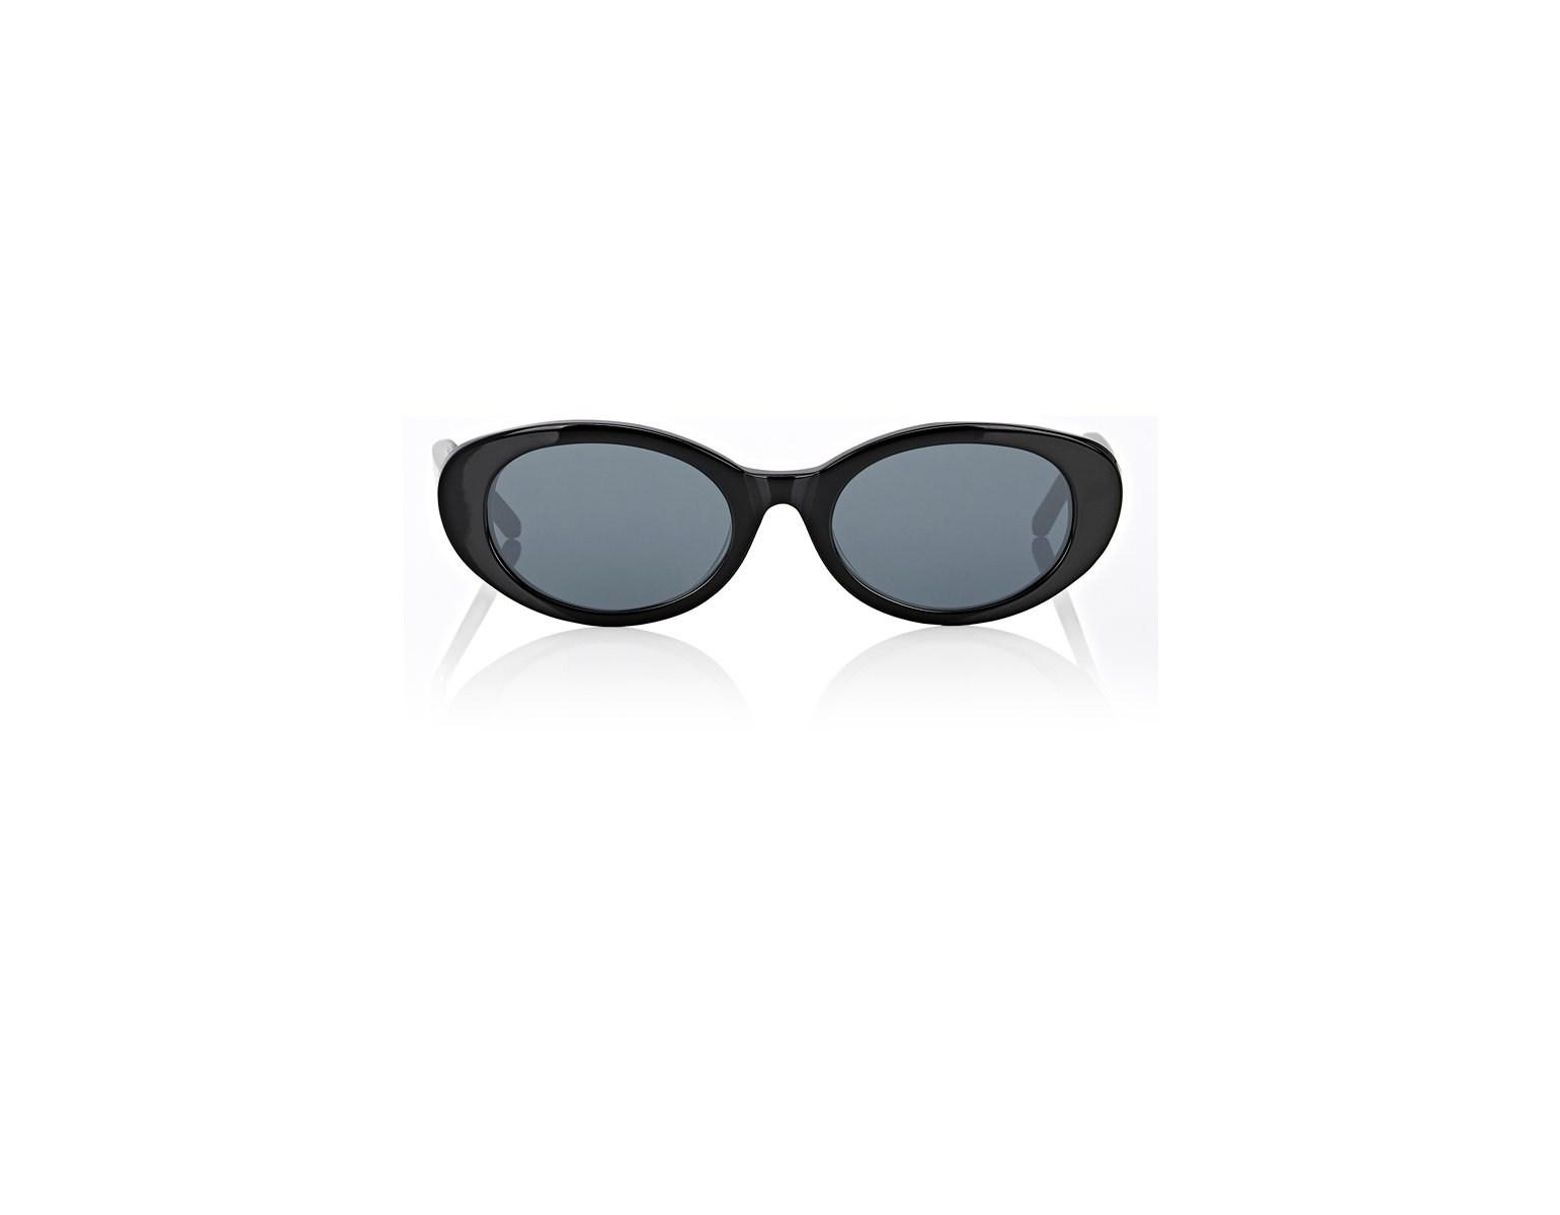 ae39686e8d6d0 ROBERI AND FRAUD Betty Sunglasses in Black - Lyst